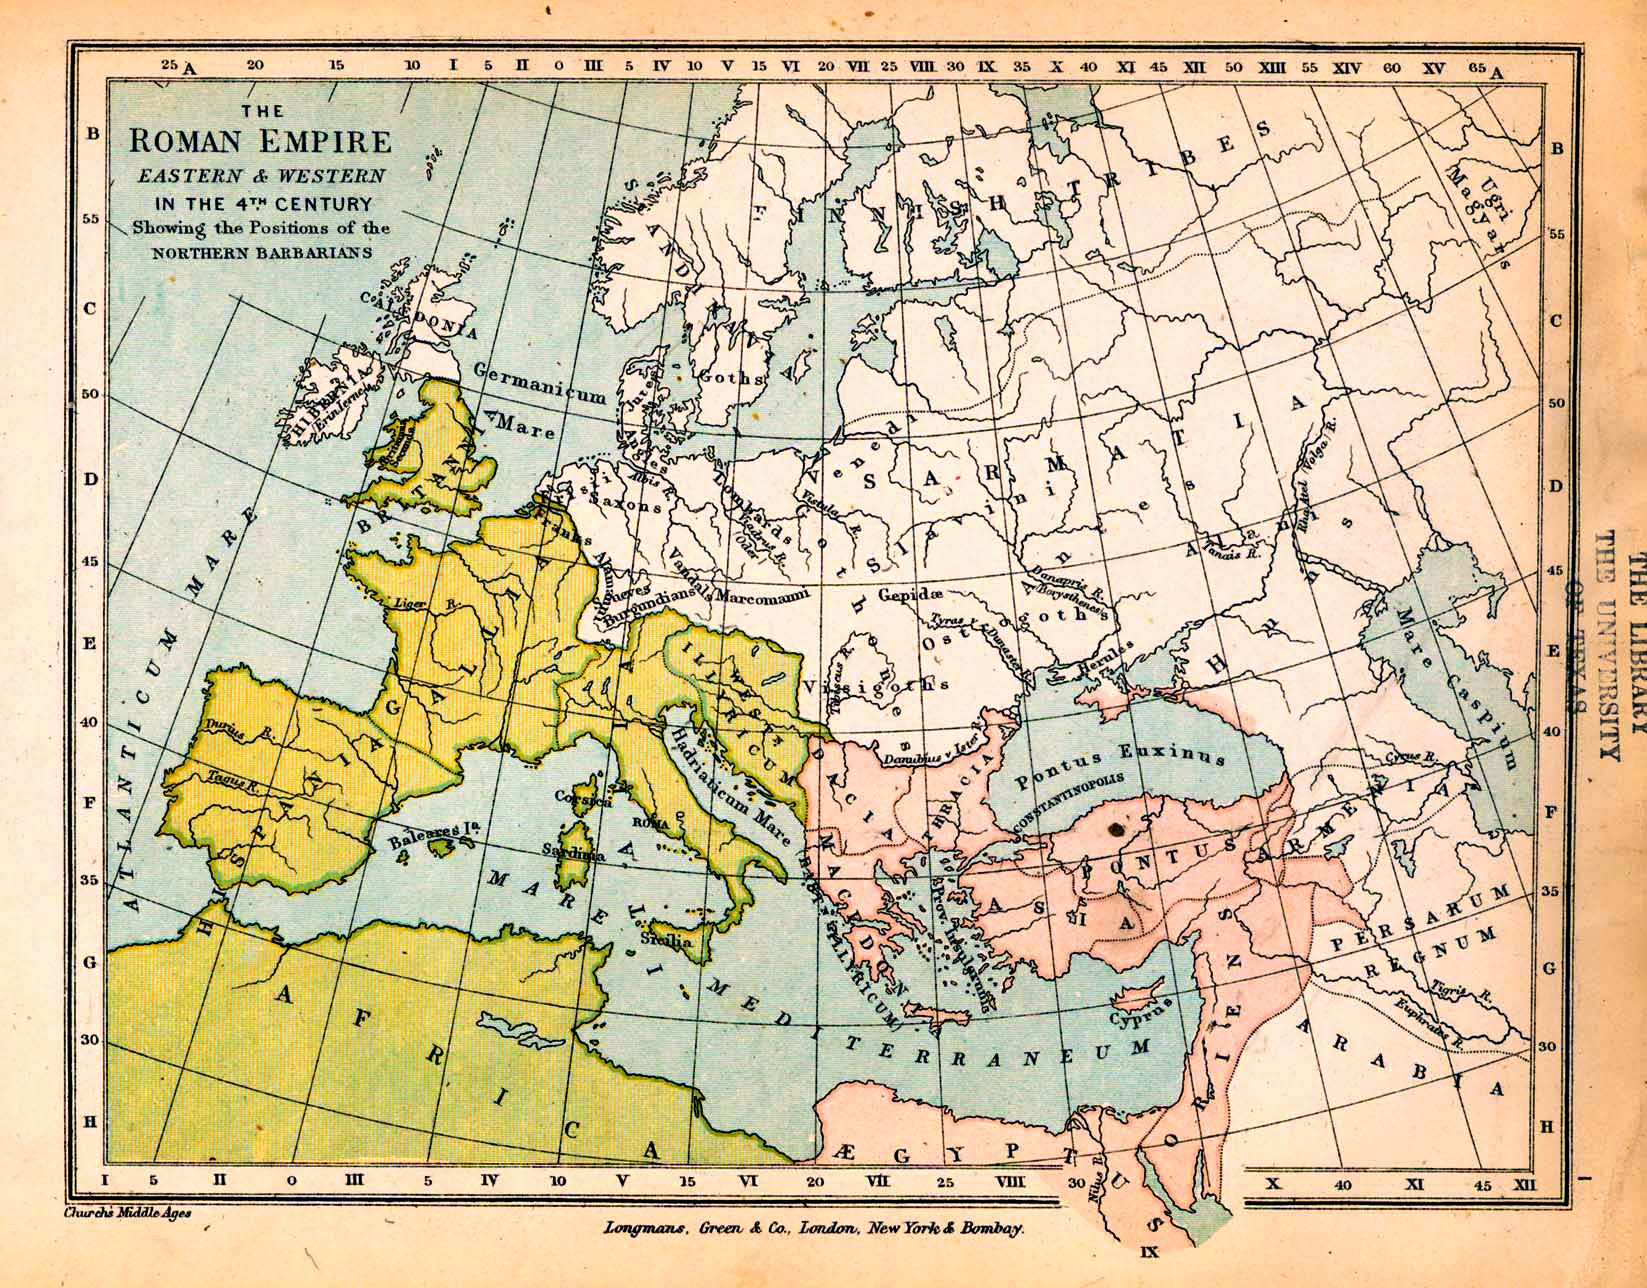 Map of the Roman Empire, Eastern and Western, in the 4th Century